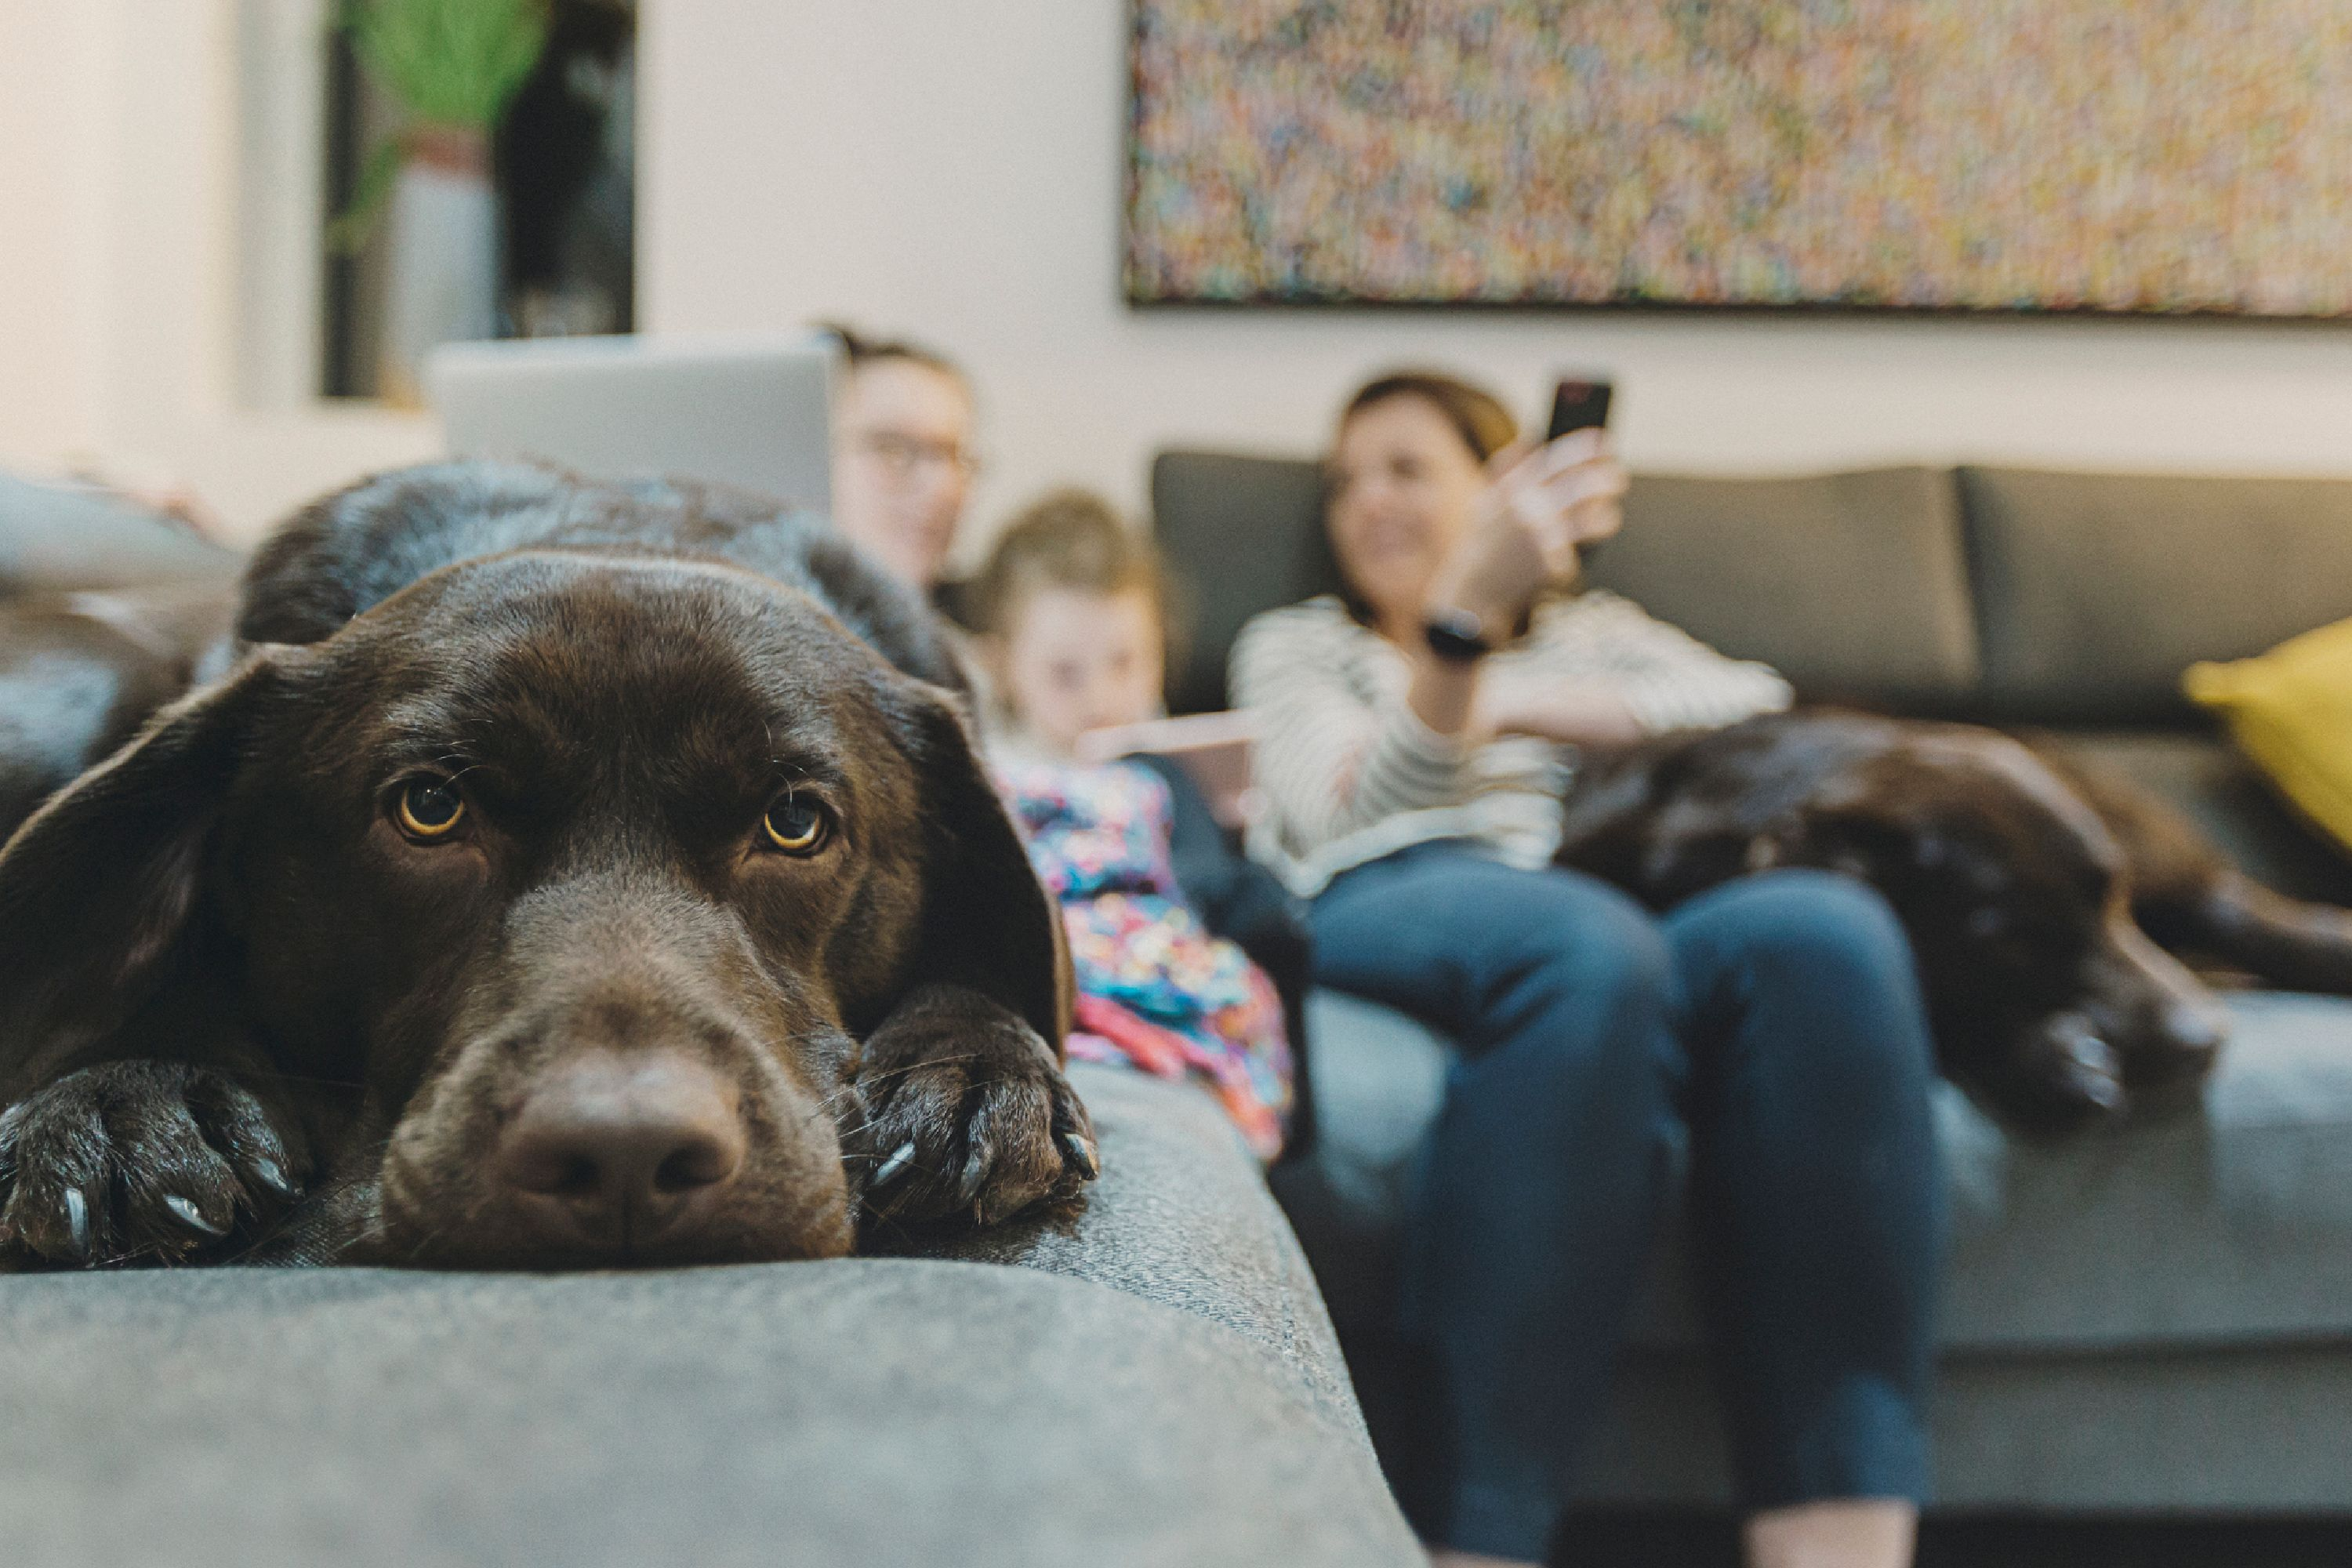 Dog on sofa with family